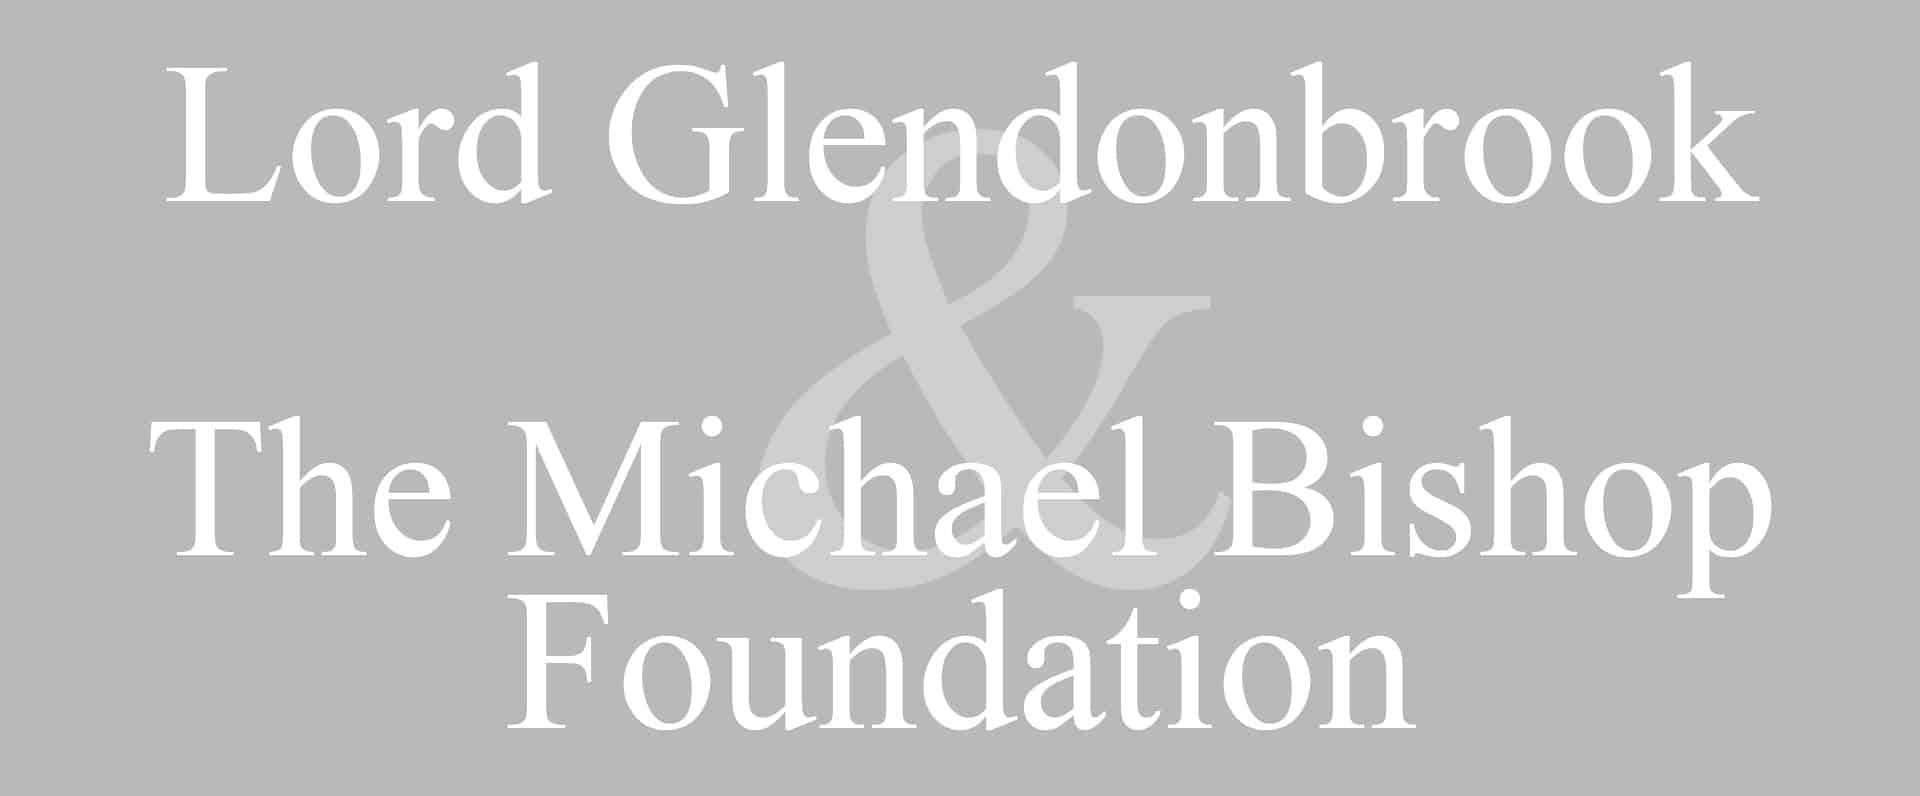 Lord Glendonbrook & Michael Bishop Foundation